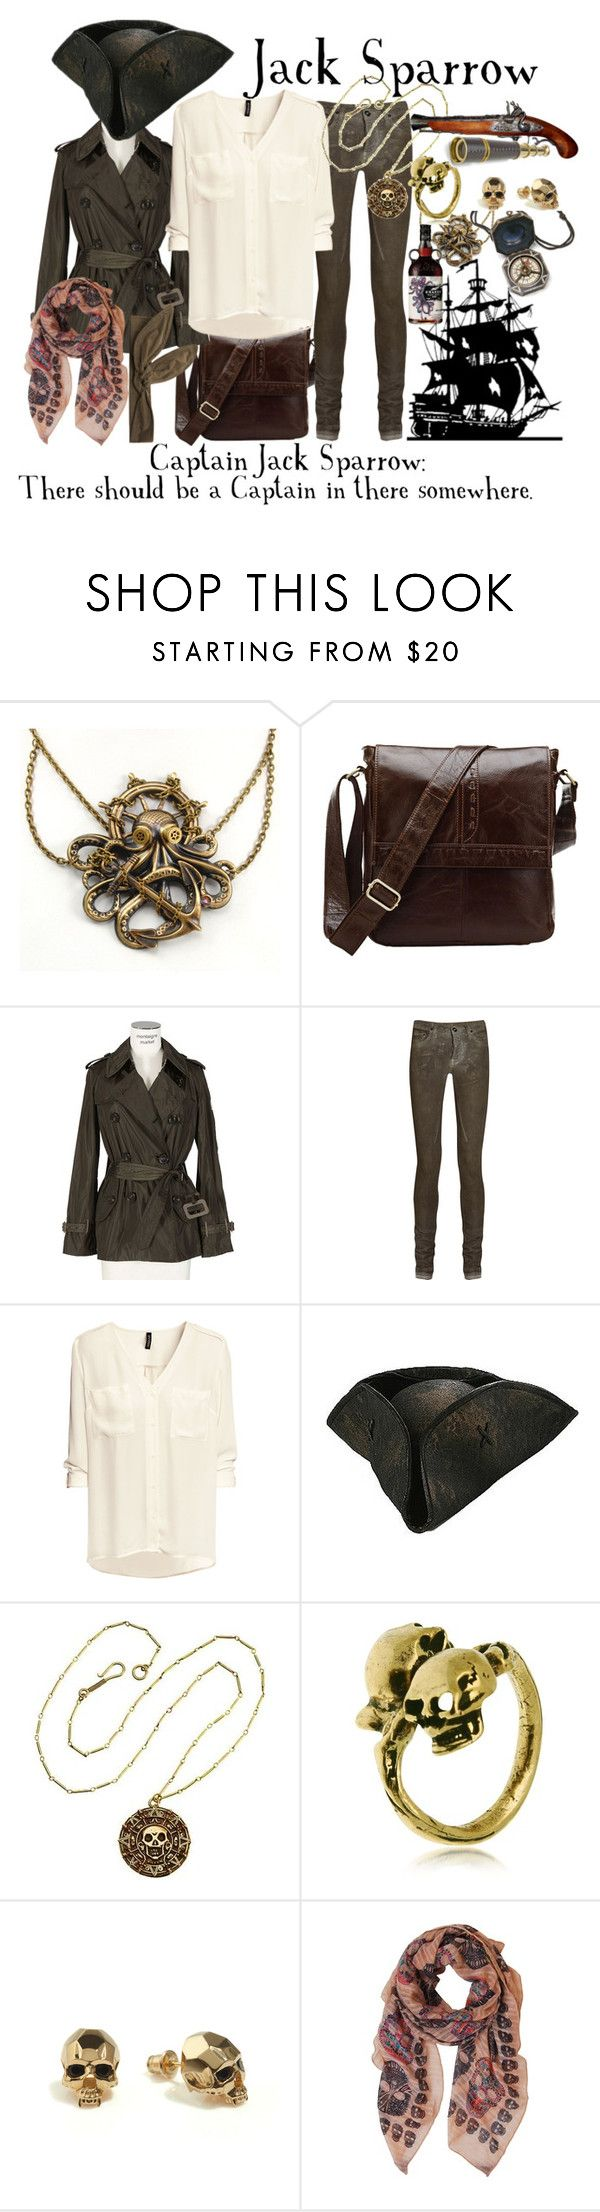 """To my future pirate self"" by jonieisacat ❤ liked on Polyvore featuring Moncler By Sacai, DRKSHDW, H&M, Alcozer & J, Kasun, Humble Chic and Federica Moretti"